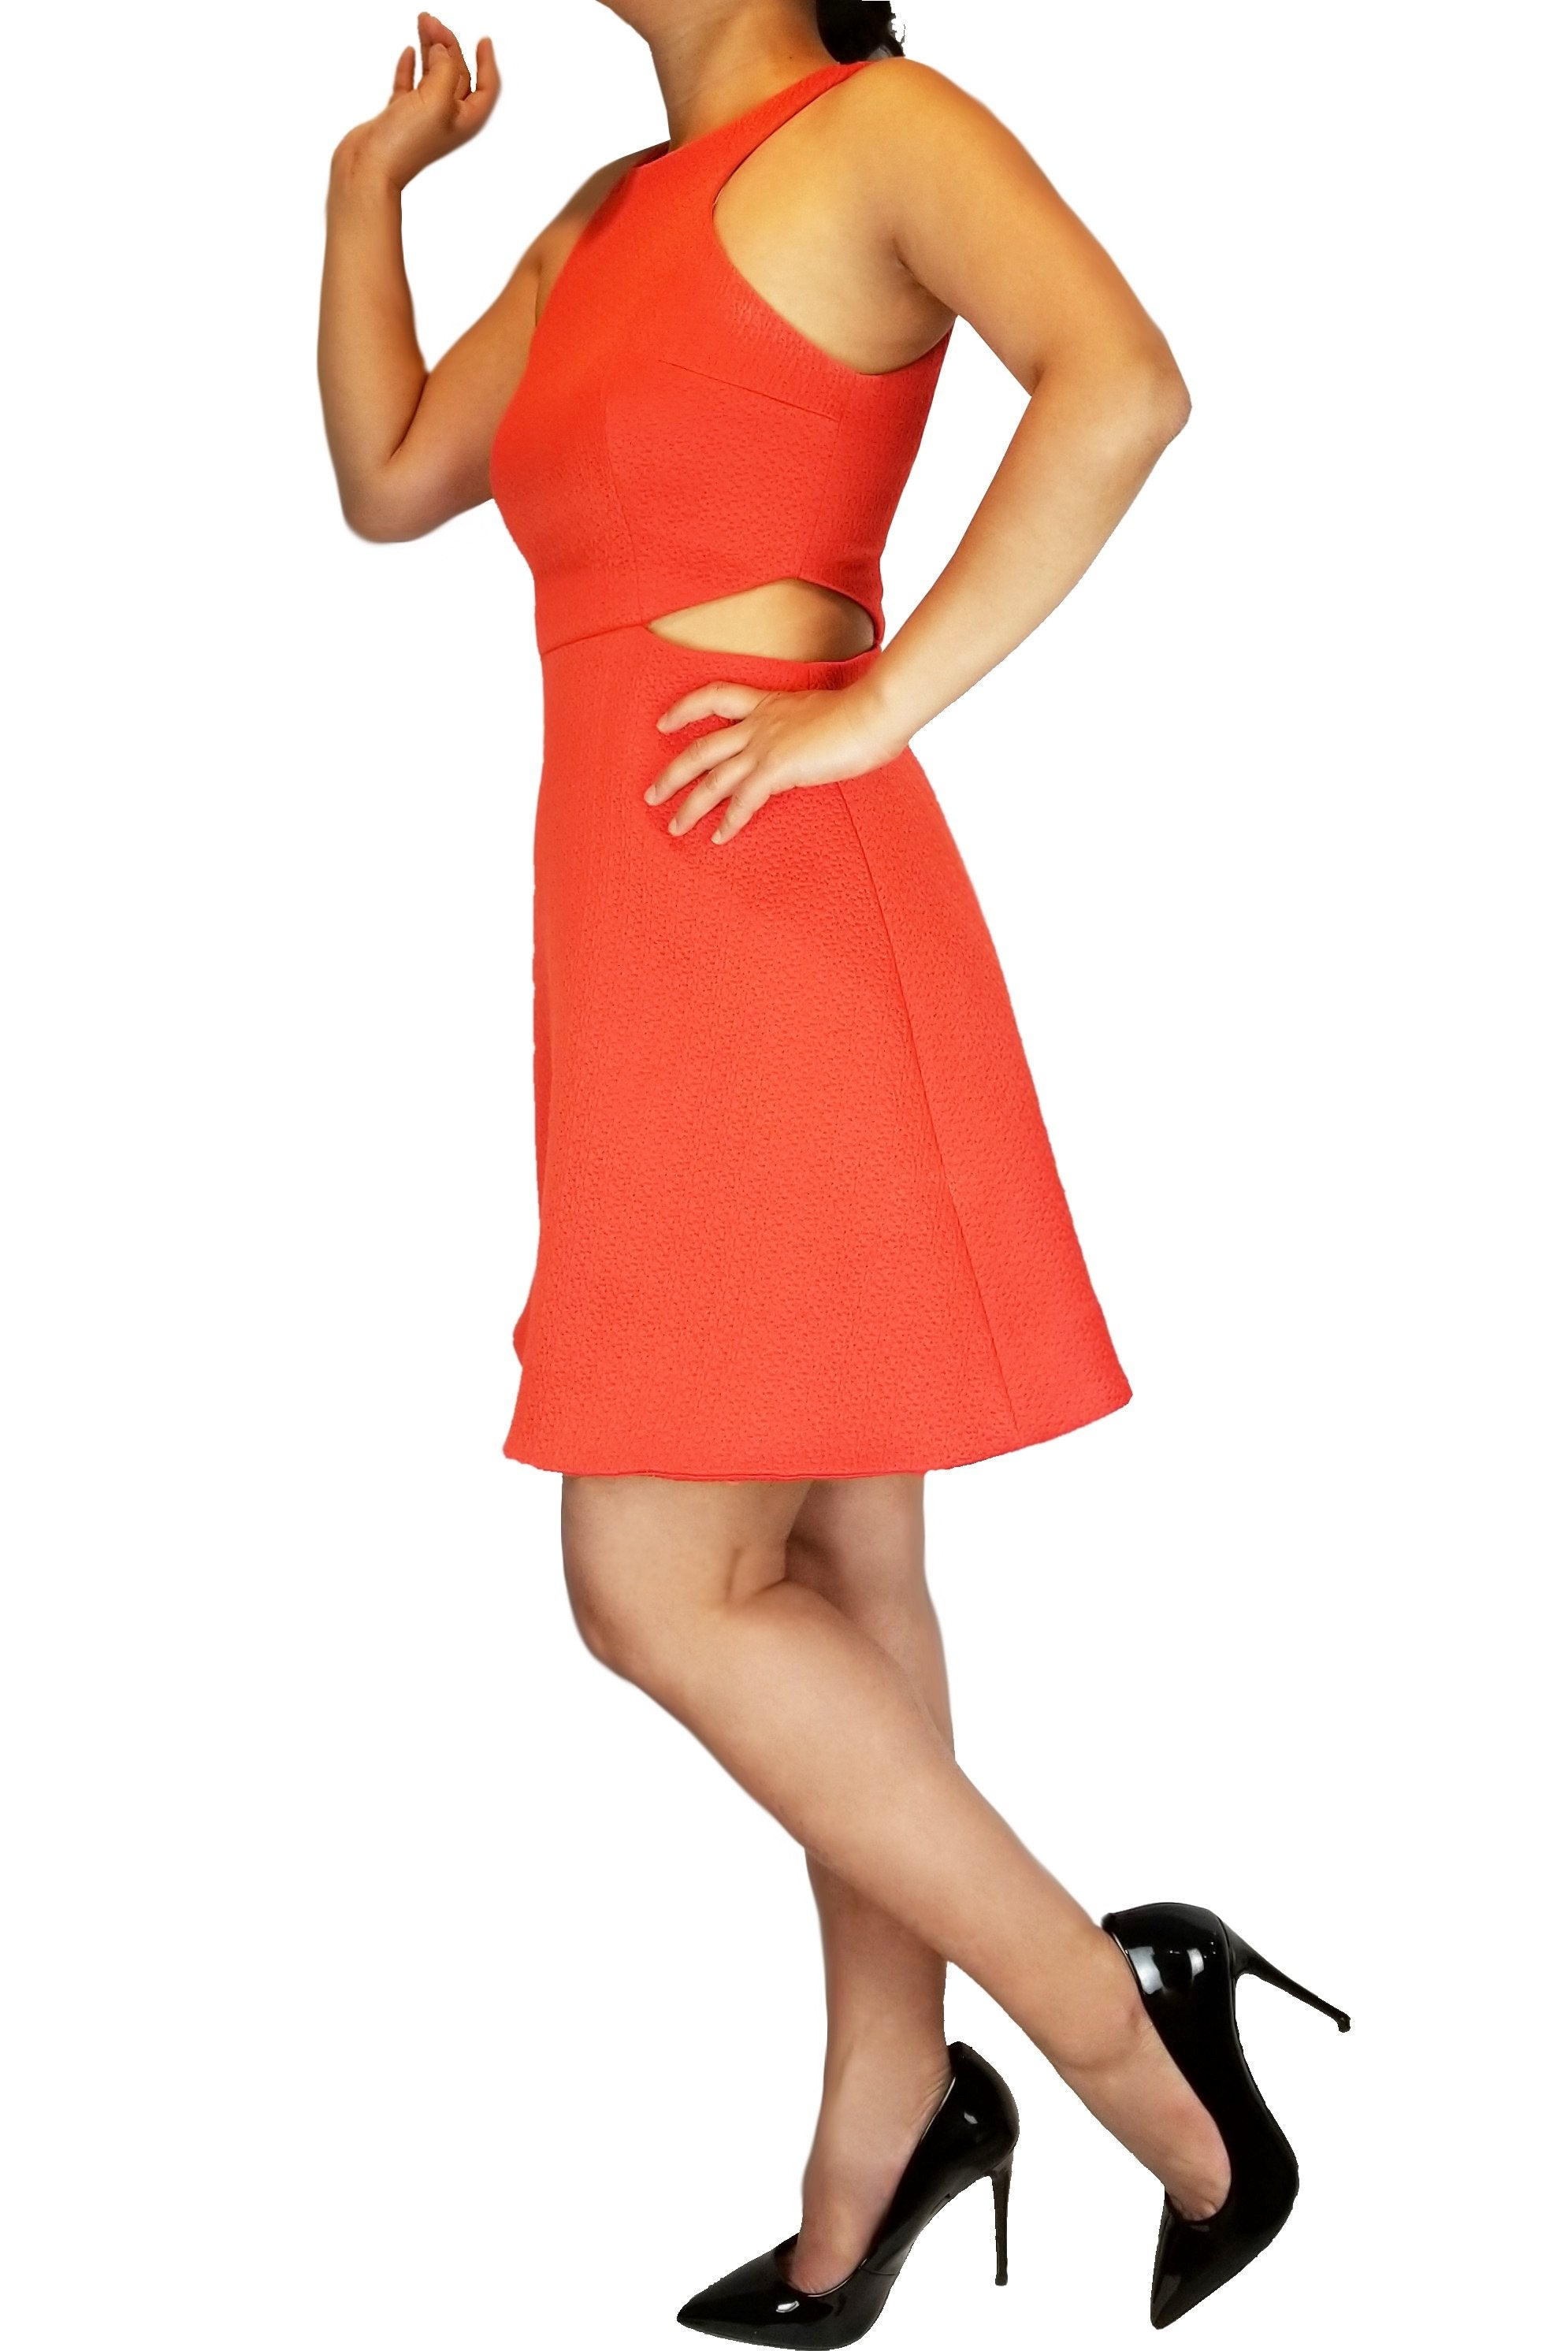 Club Monaco Orange Cutout Tika Dress, Check out the vibrant color and sexy design on this unique dress! Perfect for a fancy night out;), Orange, Shell 74% Polyester, 25% Cotton, 1% Elastane. Lining: 100% Polyester, dress, fashion, women's cocktail dress, women's night dress, fashion, orange prom cutout dress